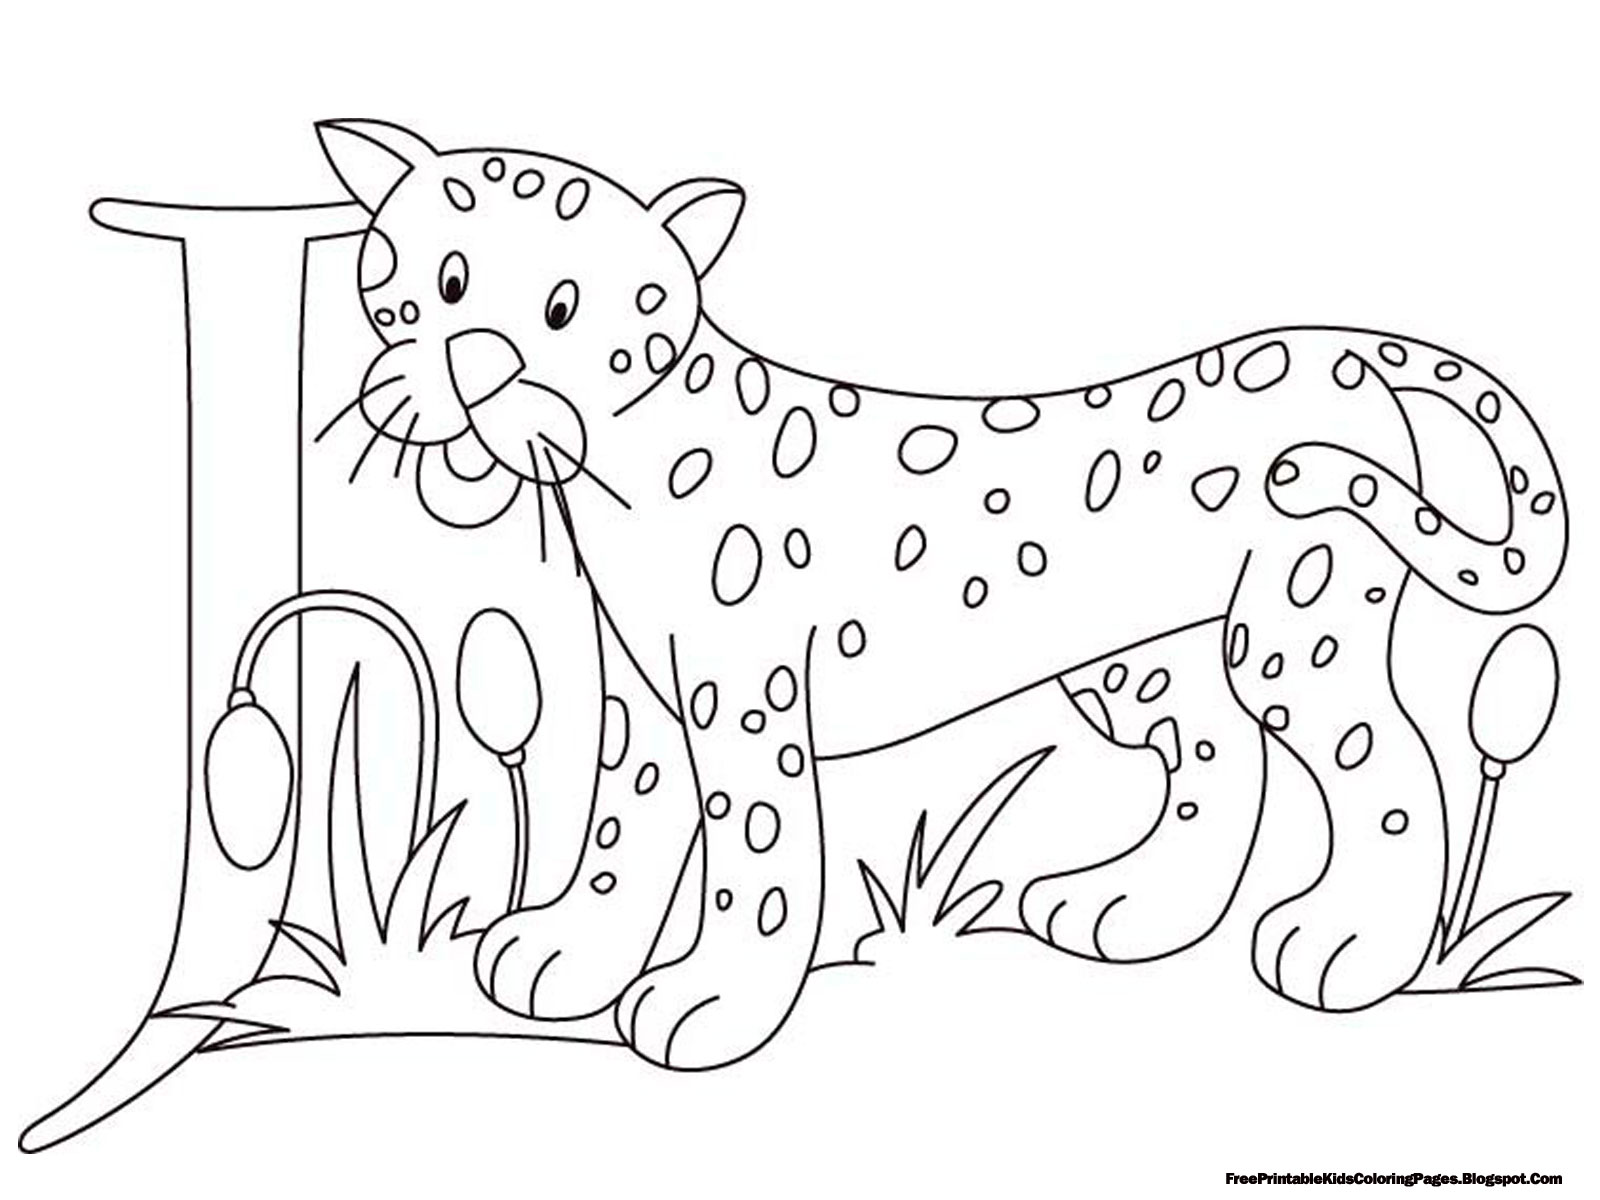 coloring pages jaguars - photo#4